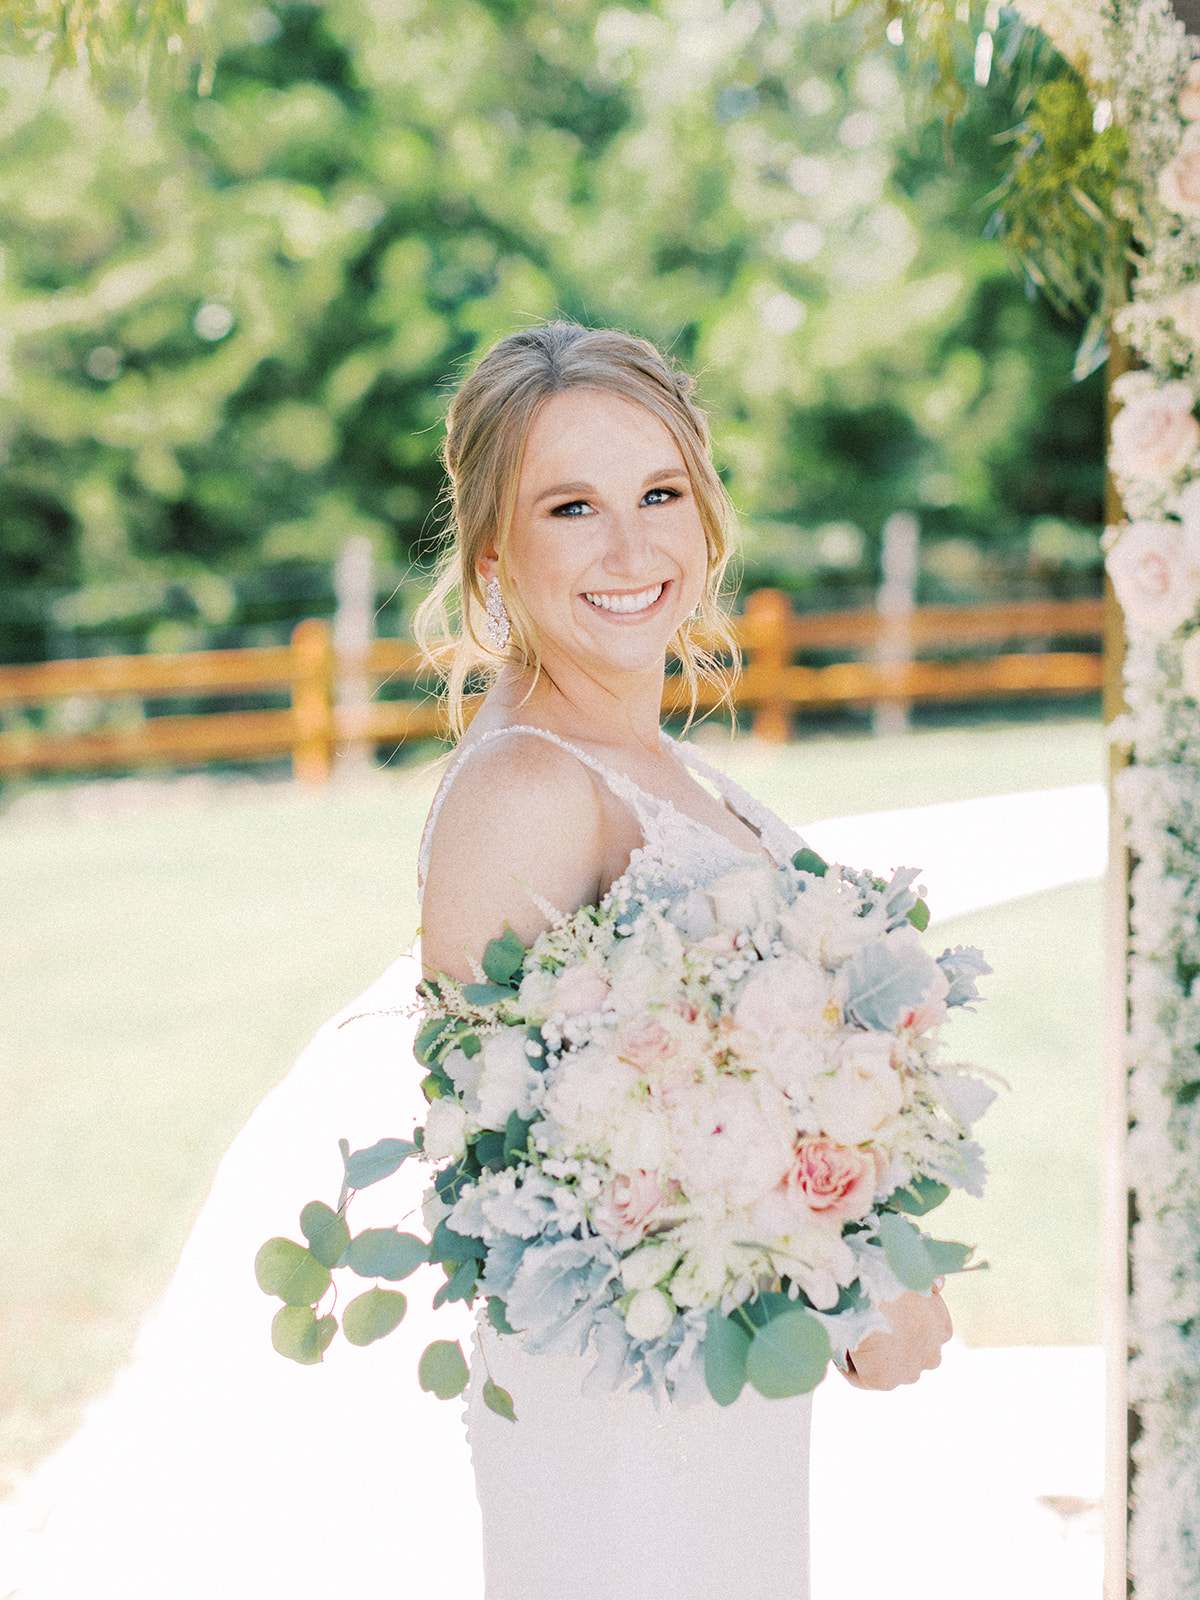 Blush and baby blue wedding bouquet: | Romantic blue Texas wedding at Spring Venue by Alexa Kay Events